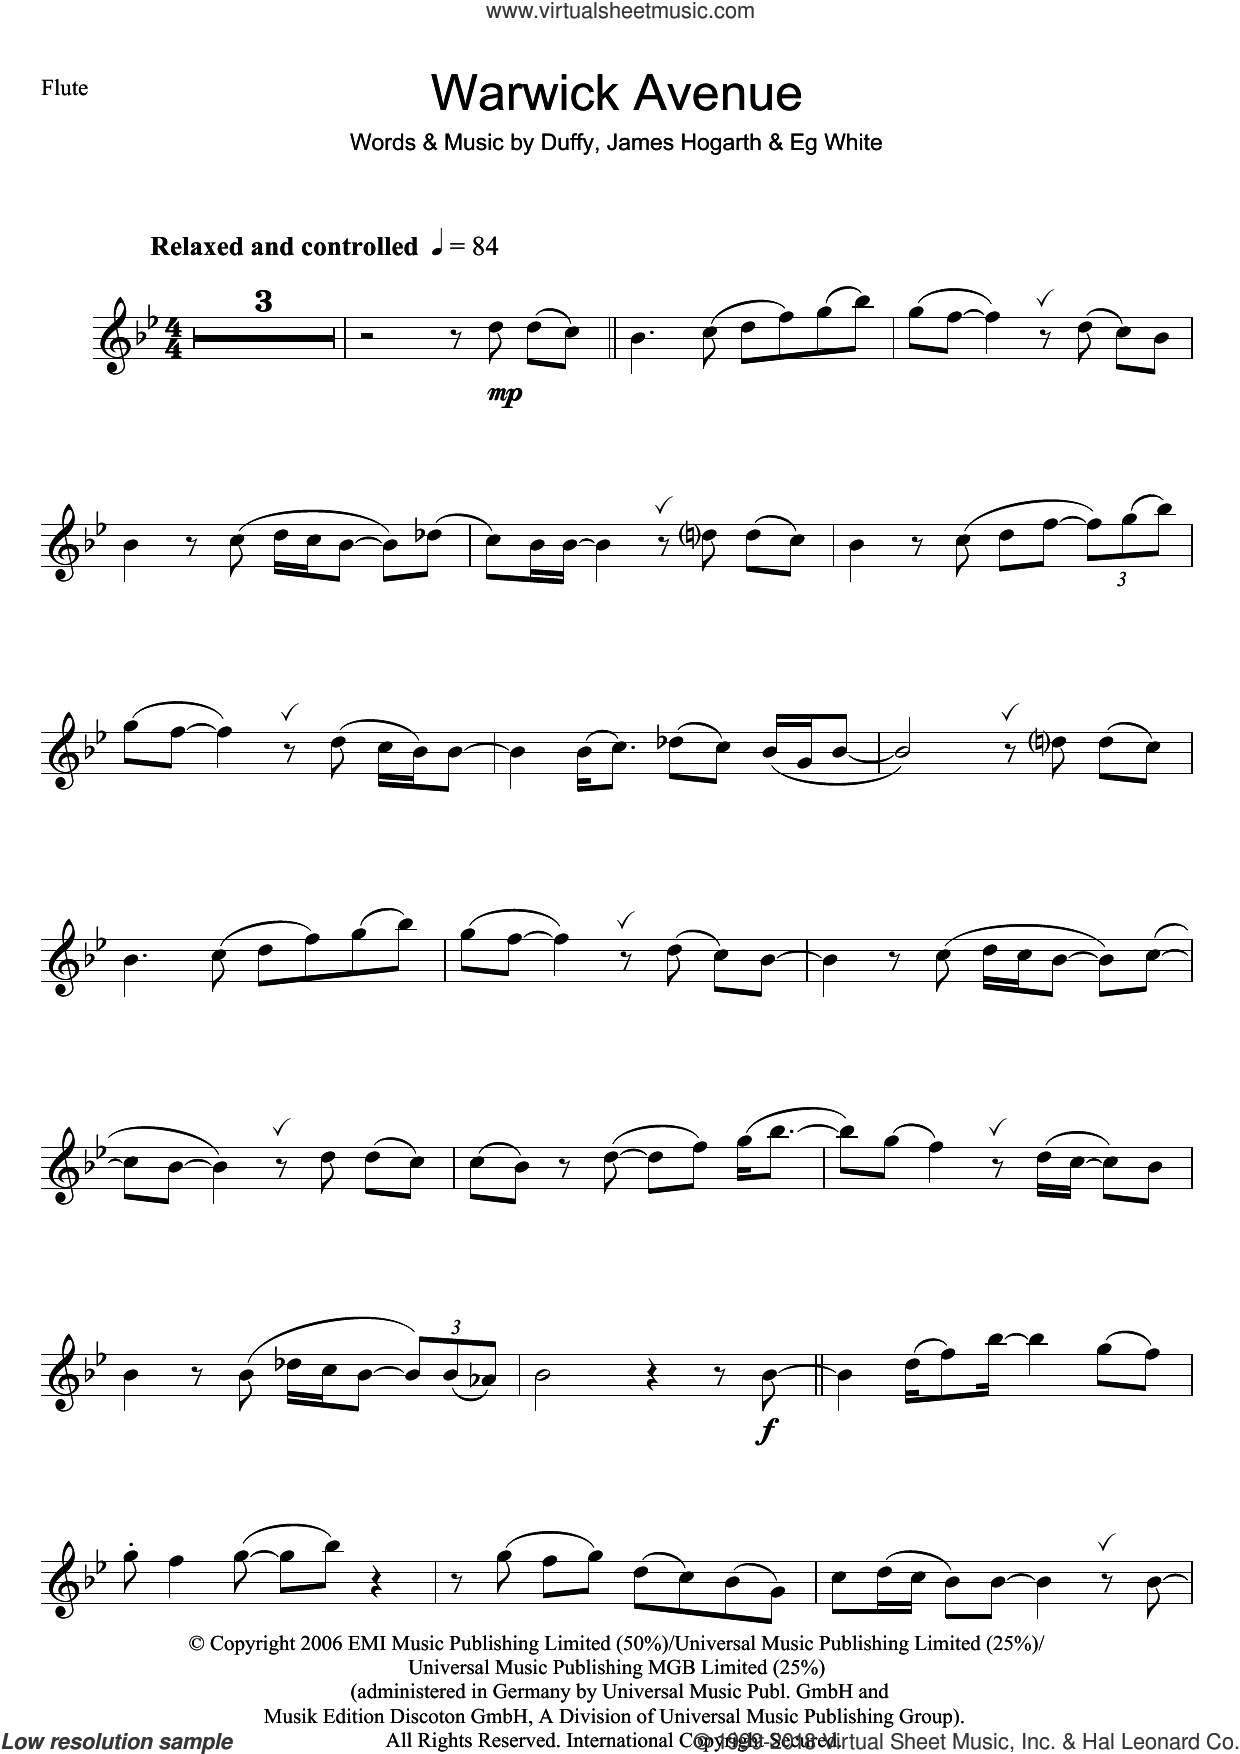 Warwick Avenue sheet music for flute solo by Duffy, Aimee Duffy, Francis White and James Hogarth, intermediate skill level